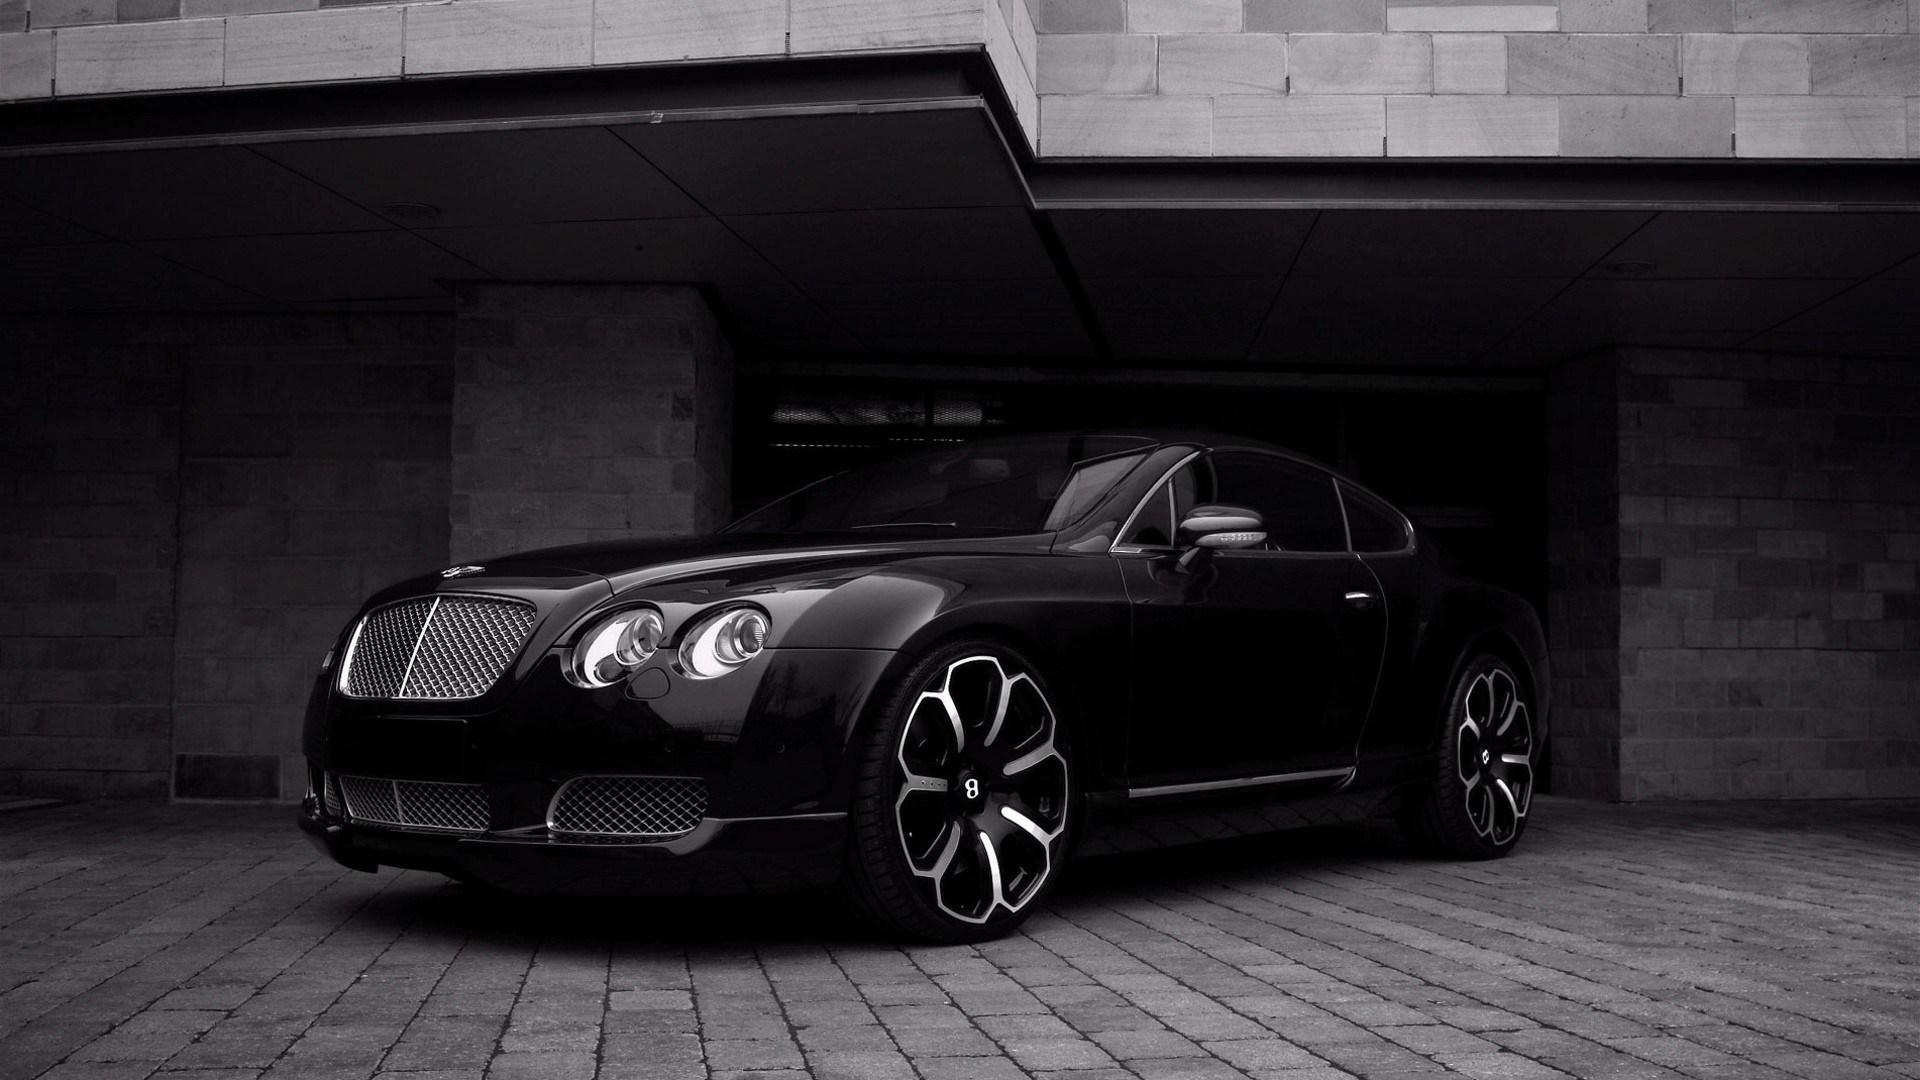 New Bentley Full Hd Wallpaper And Background Image 1920X1080 On This Month